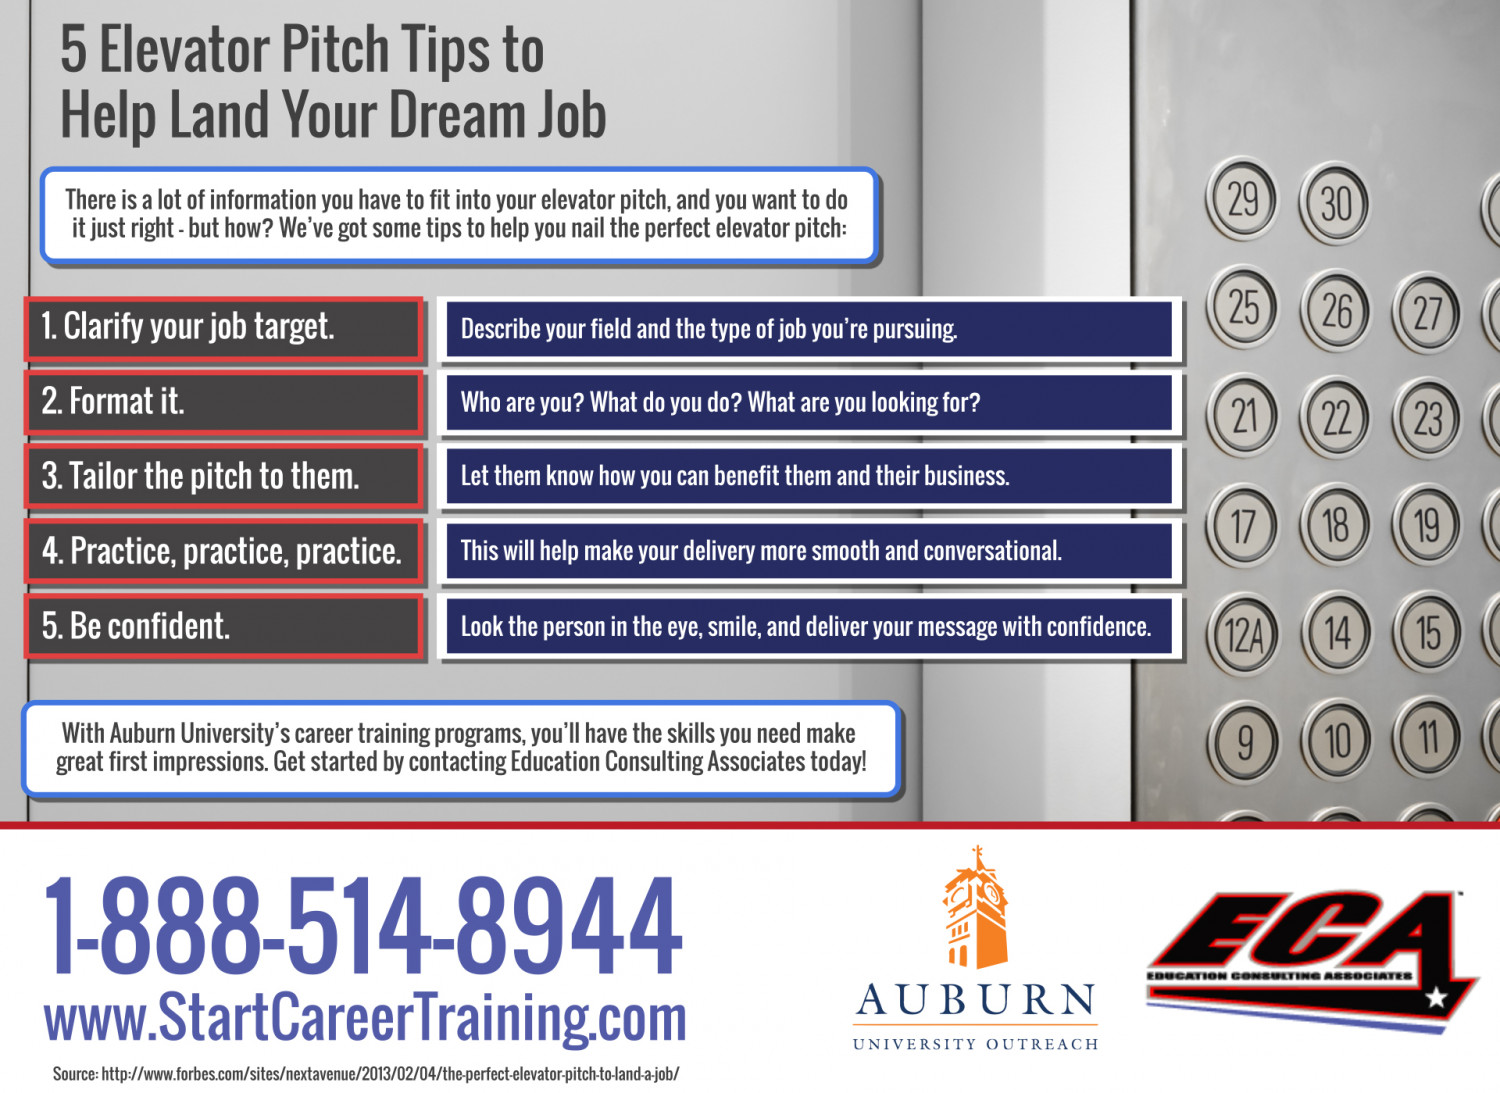 5 Elevator Pitch Tips to Help Land Your Dream Job Infographic